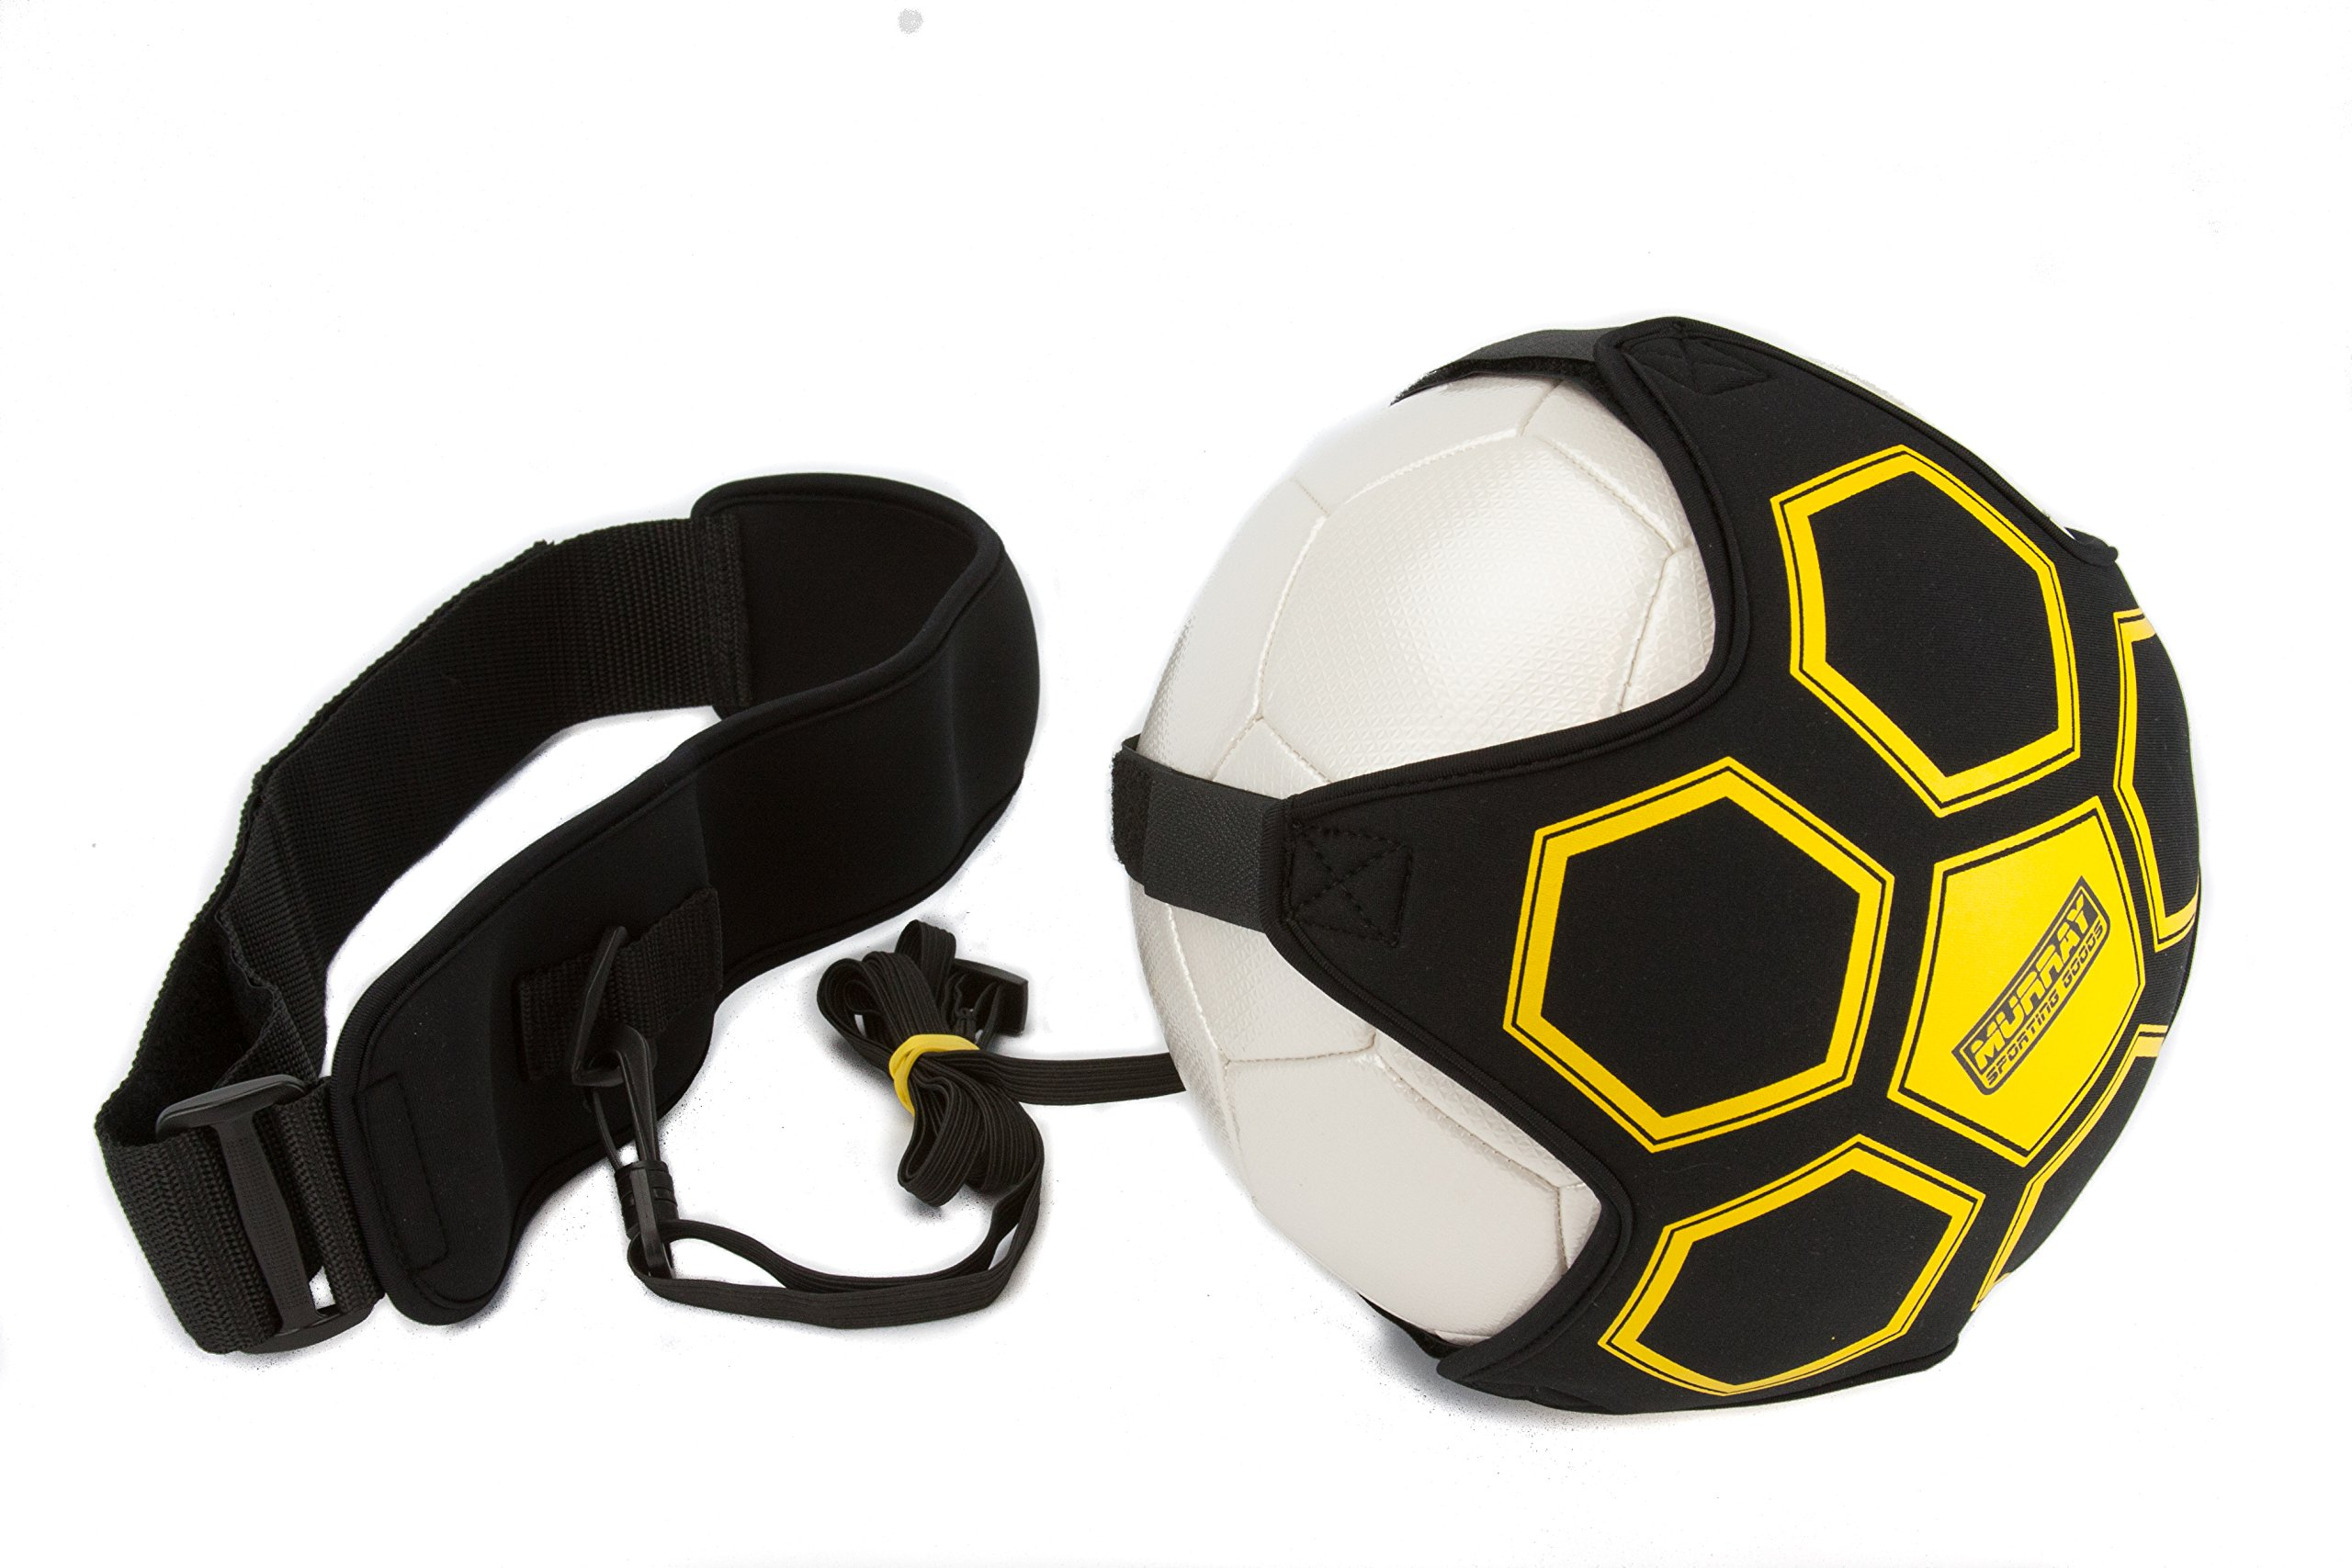 Murray Sporting Goods Hands Free Soccer Kick Trainer